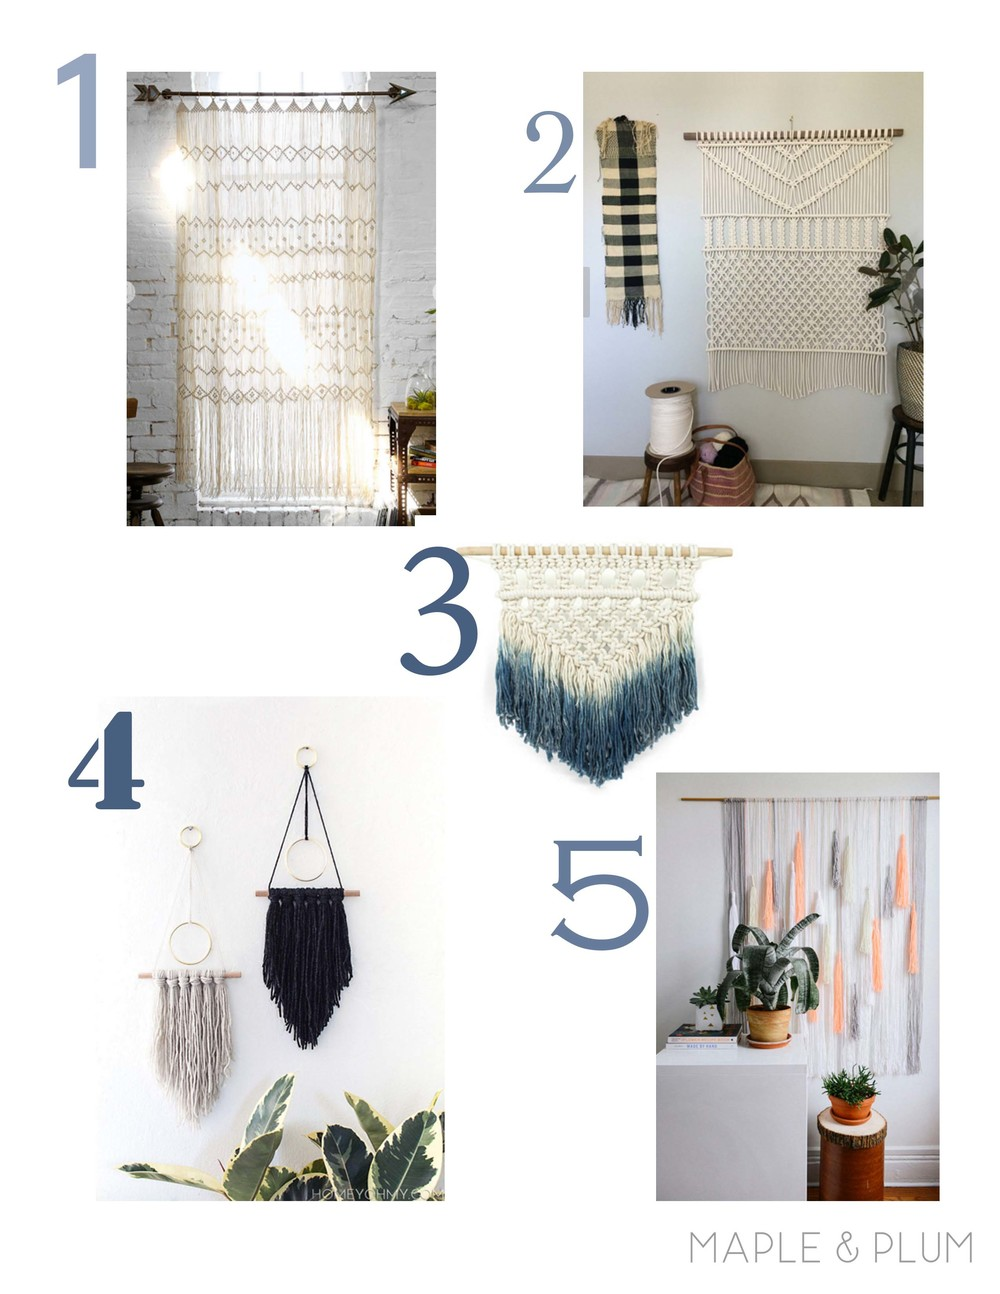 1. U rban Outfitters Magical Thinking Macrame Wall Hanging   http://www.urbanoutfitters.com/urban/catalog/productdetail.jsp?id=31517535  2.  Etsy Macrame Wall Hanging by HollyMuellerHome   https://www.etsy.com/listing/195741203/macrame-wall-hanging-forest?ref=related-0  3.  Moorea Seal Dip Dyed Macrame Wall Hanging    http://www.mooreaseal.com/products/dip-dyed-macrame-wall-hanging-1   4.  Homey On My DIY Modern Yarn Hanging   http://www.homeyohmy.com/diy-modern-yarn-hanging/   5..  Design Love Fest Make It Wall Hanging  http://www.designlovefest.com/2015/07/make-it-wall-hanging/